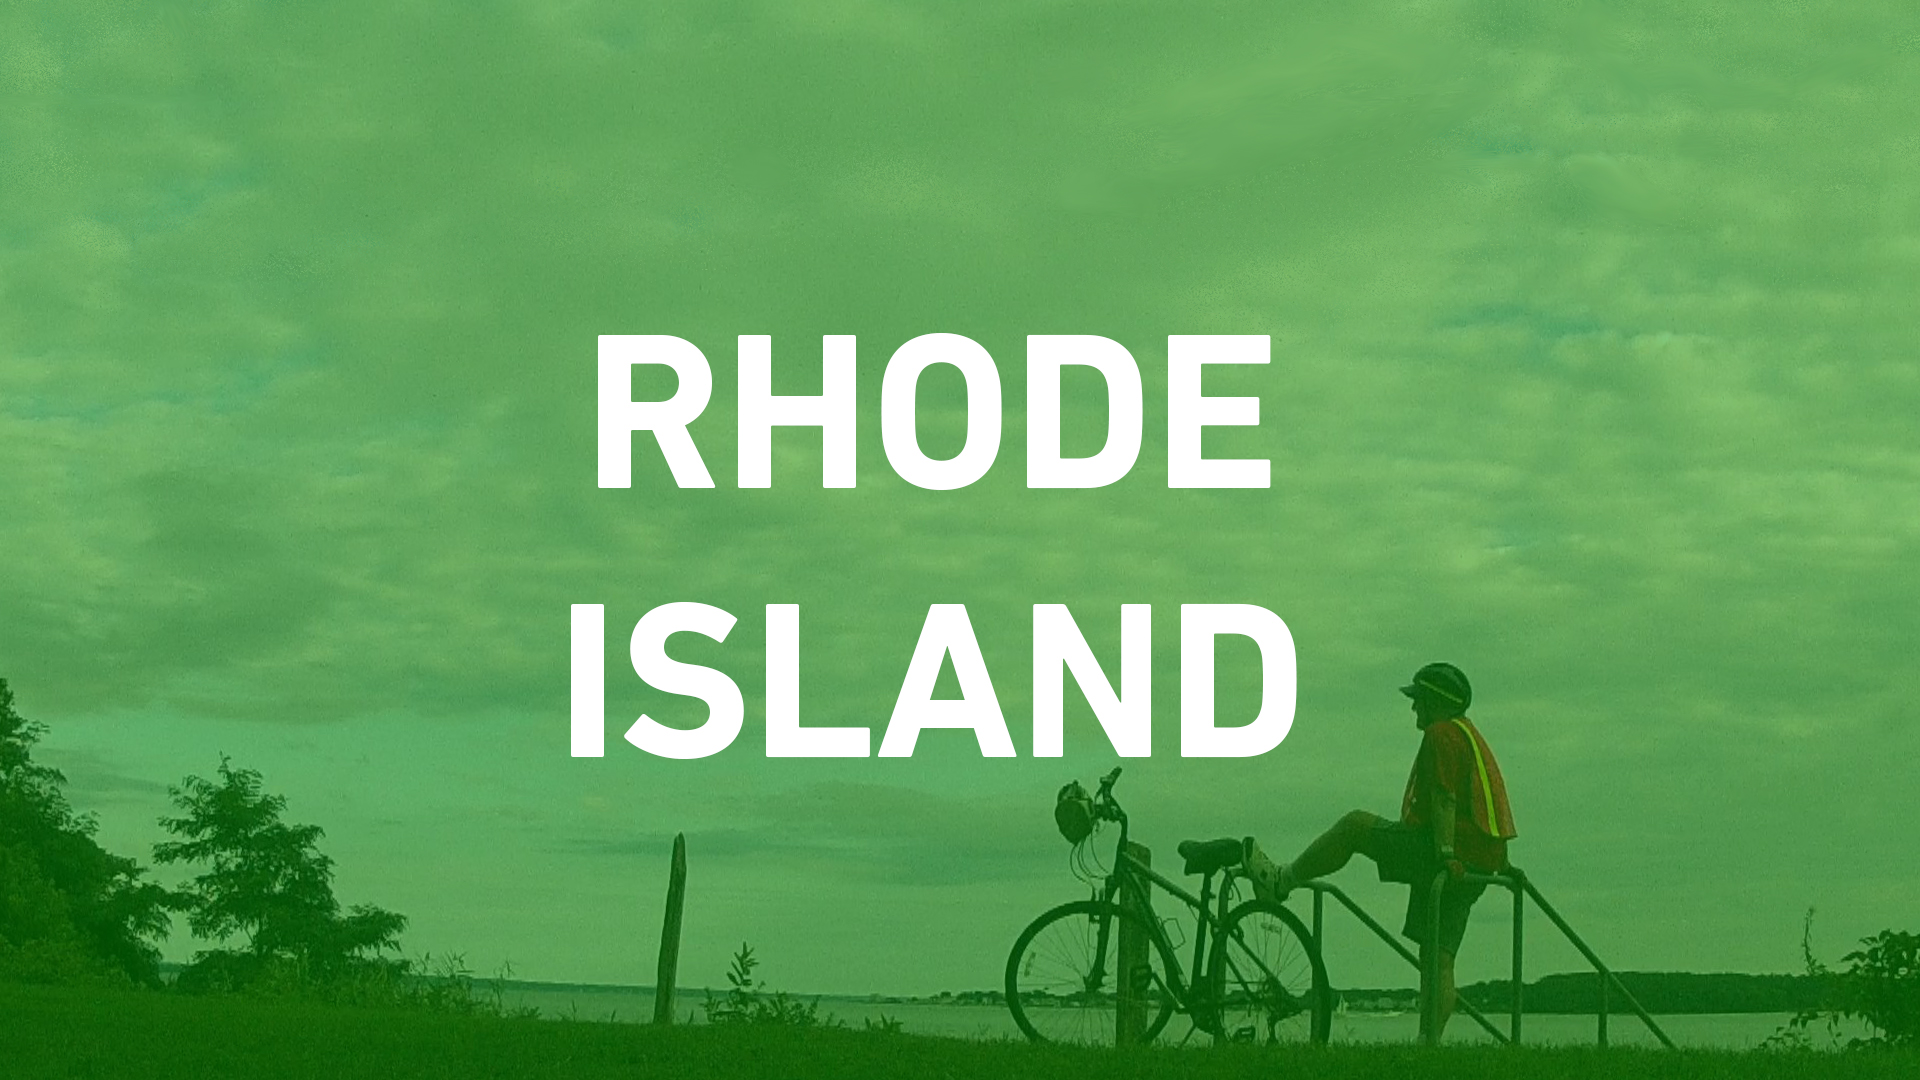 RI thumbnail for web green.jpg